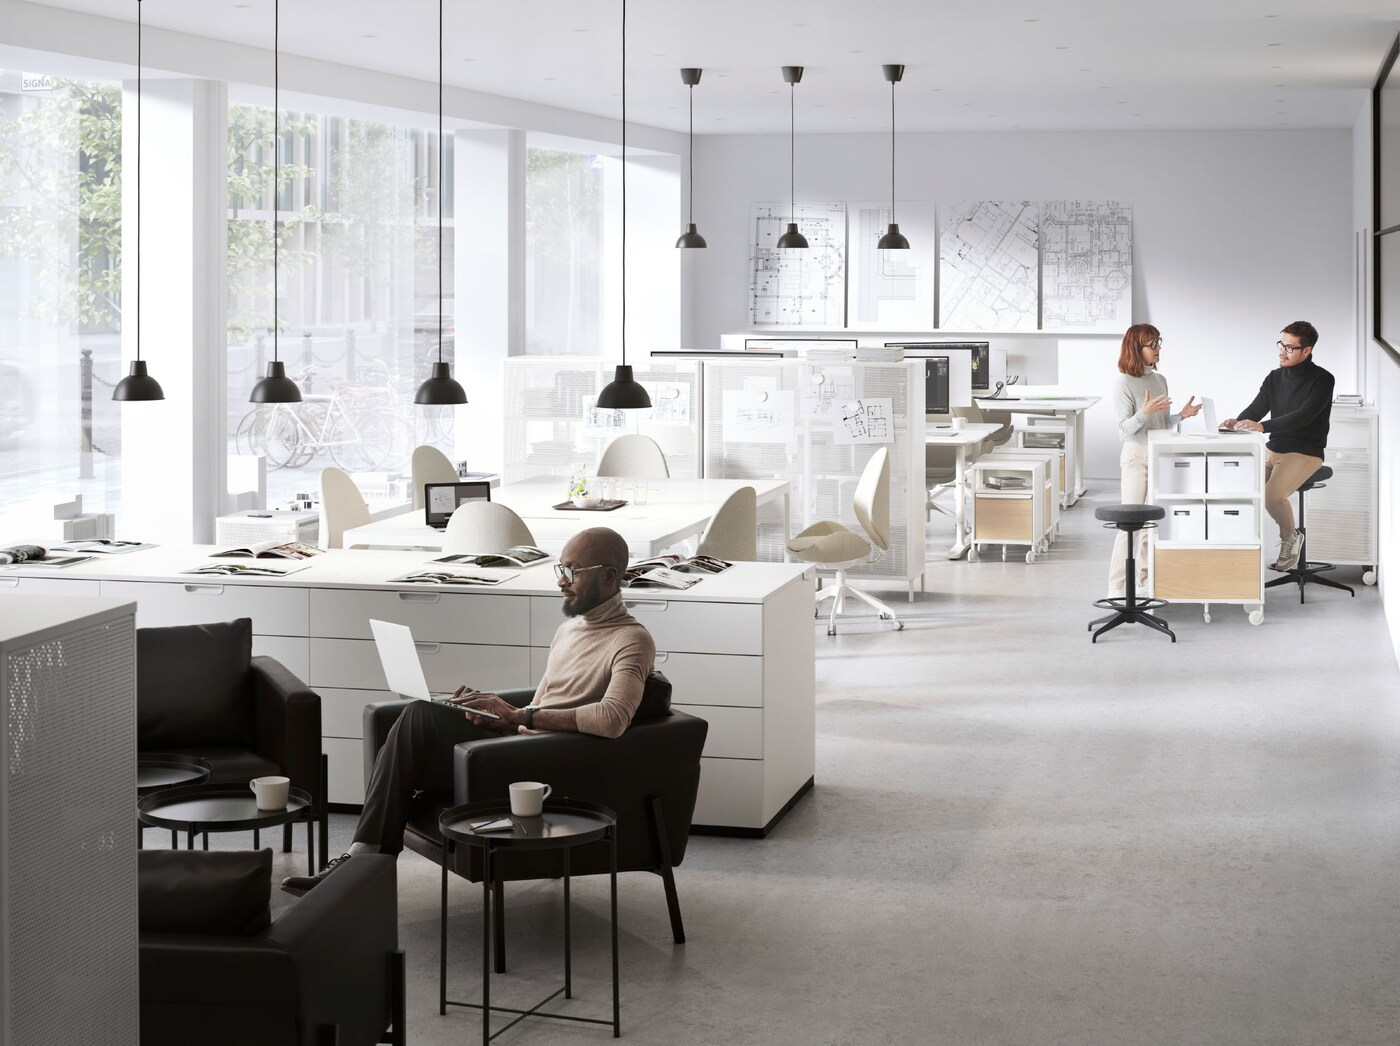 An open plan office with two breakout zones. A man works in a KOARP armchair and two people chat over a BEKANT shelving unit.